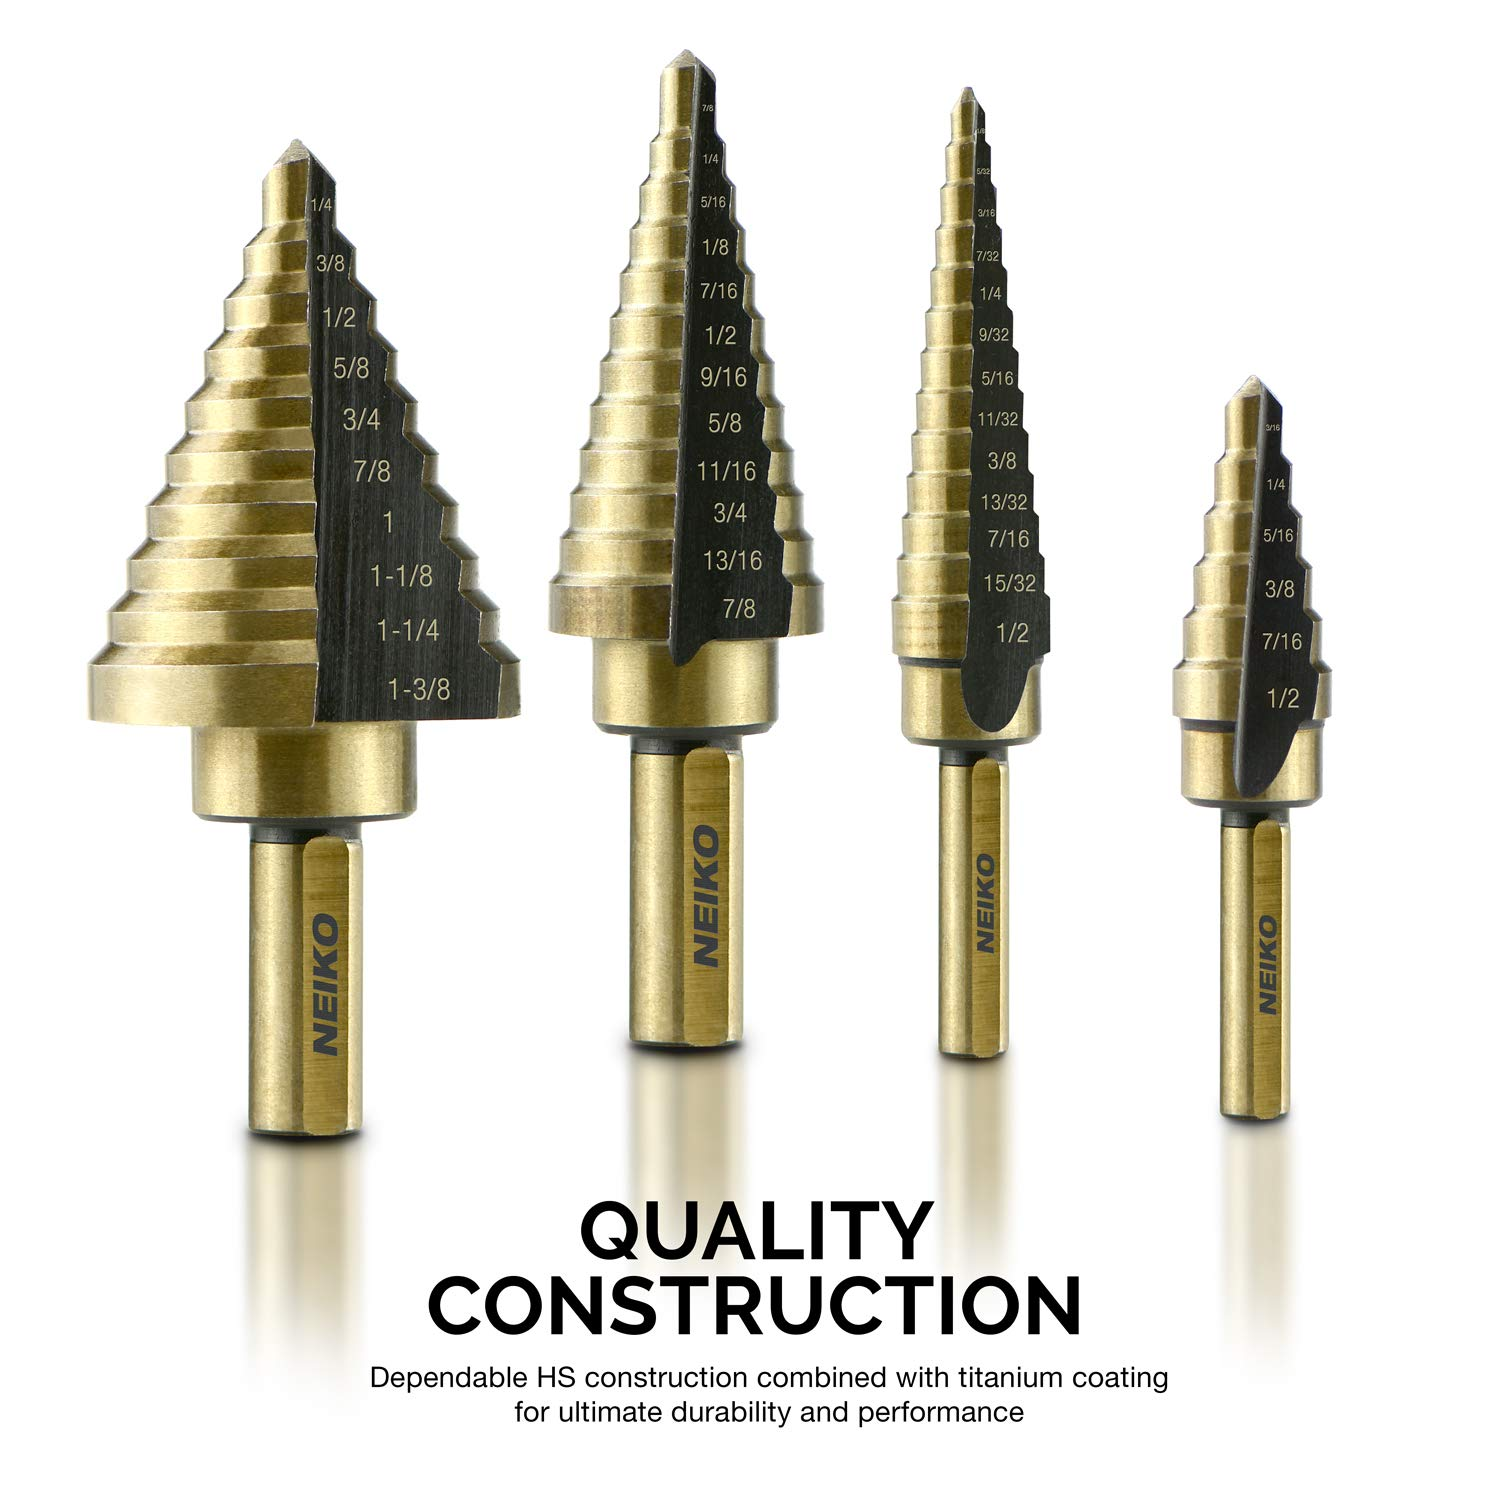 Amazon.com: Neiko 10169A Titanium Step Drill Bit Set with Automatic Center Punch, 5-Piece | High Speed Steel | SAE | Total 41 Sizes: Home Improvement